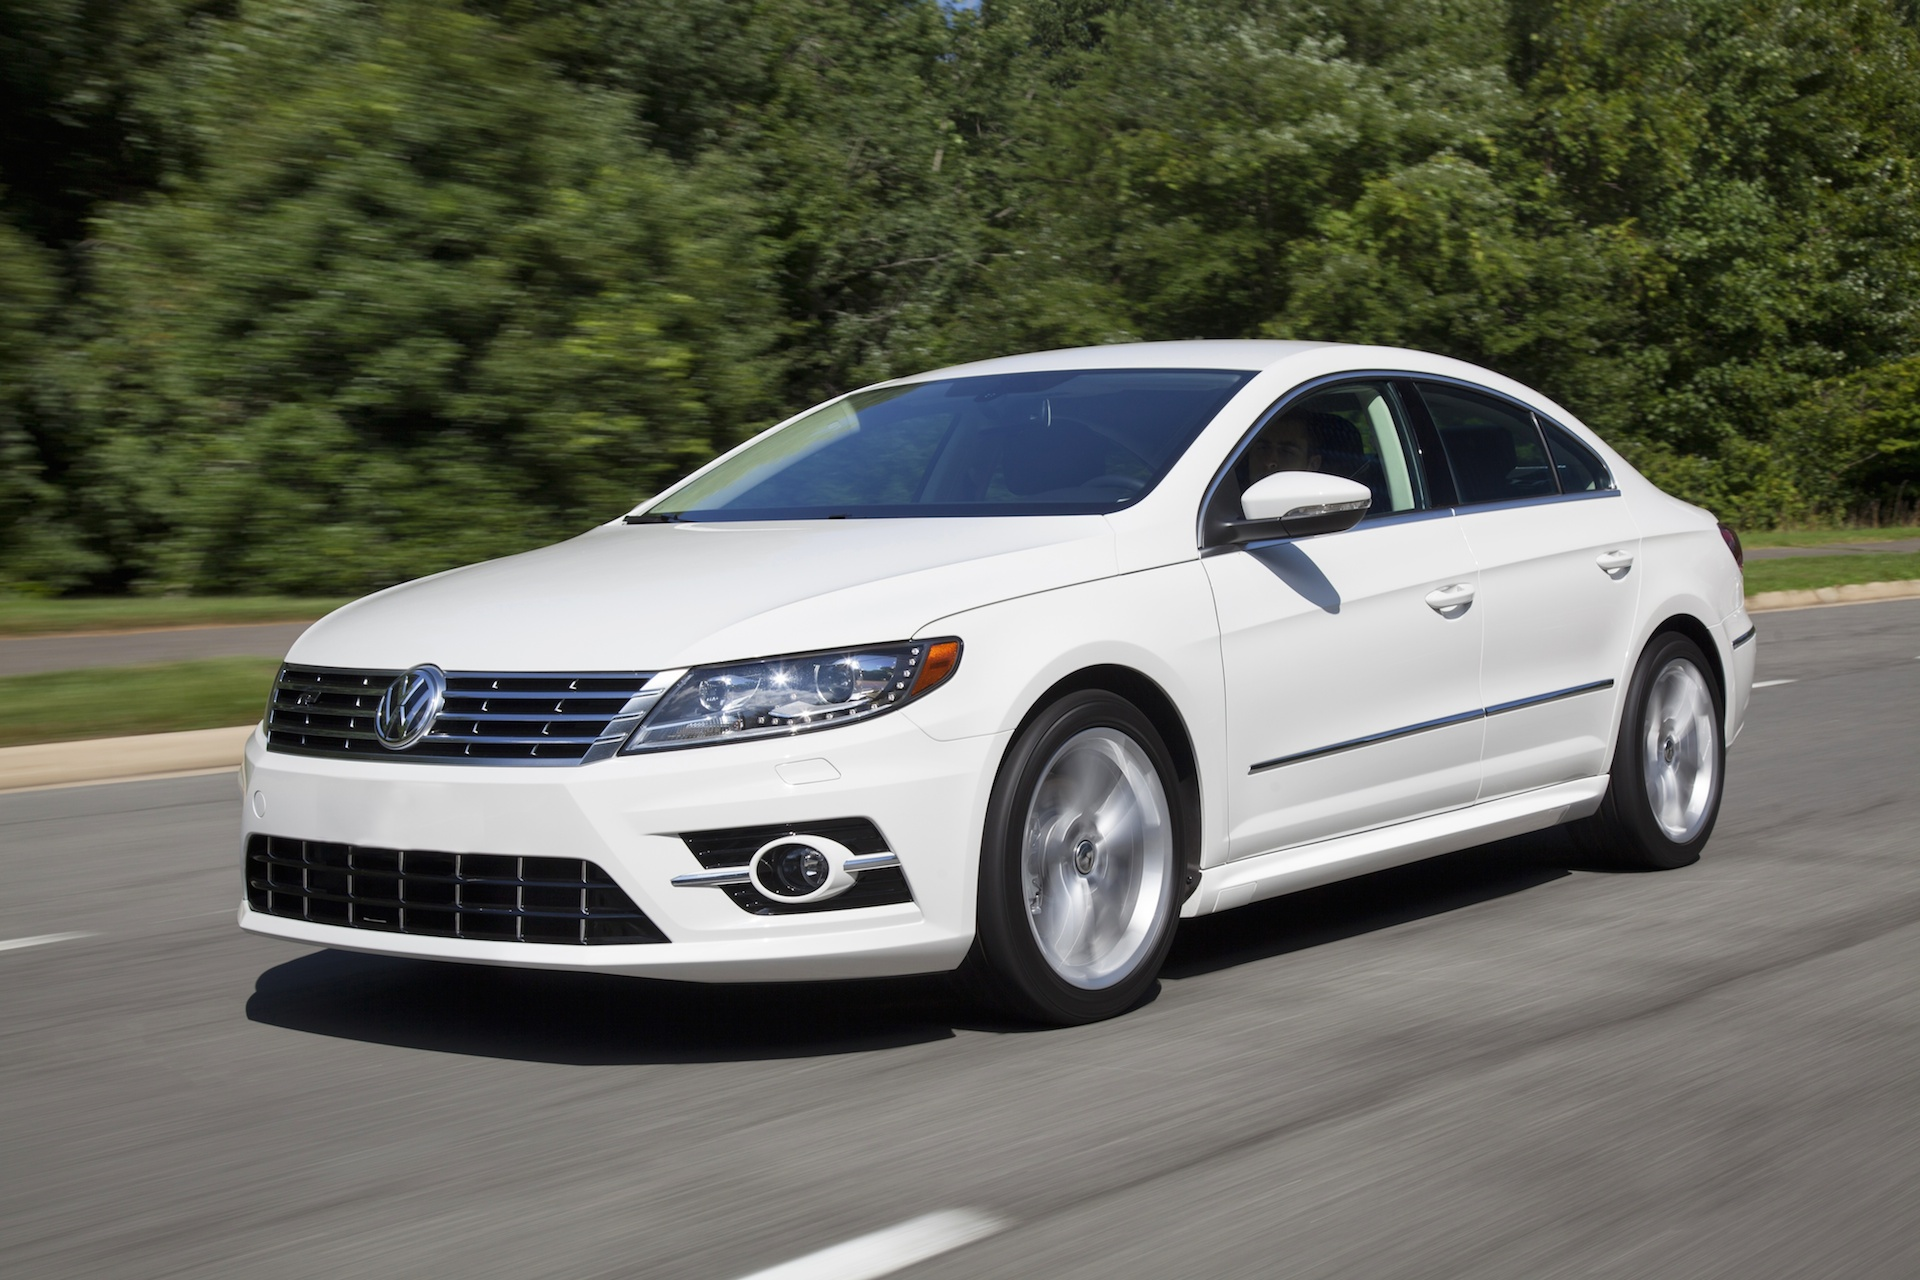 Acura Fort Worth >> 2015 Volkswagen CC (VW) Review, Ratings, Specs, Prices ...